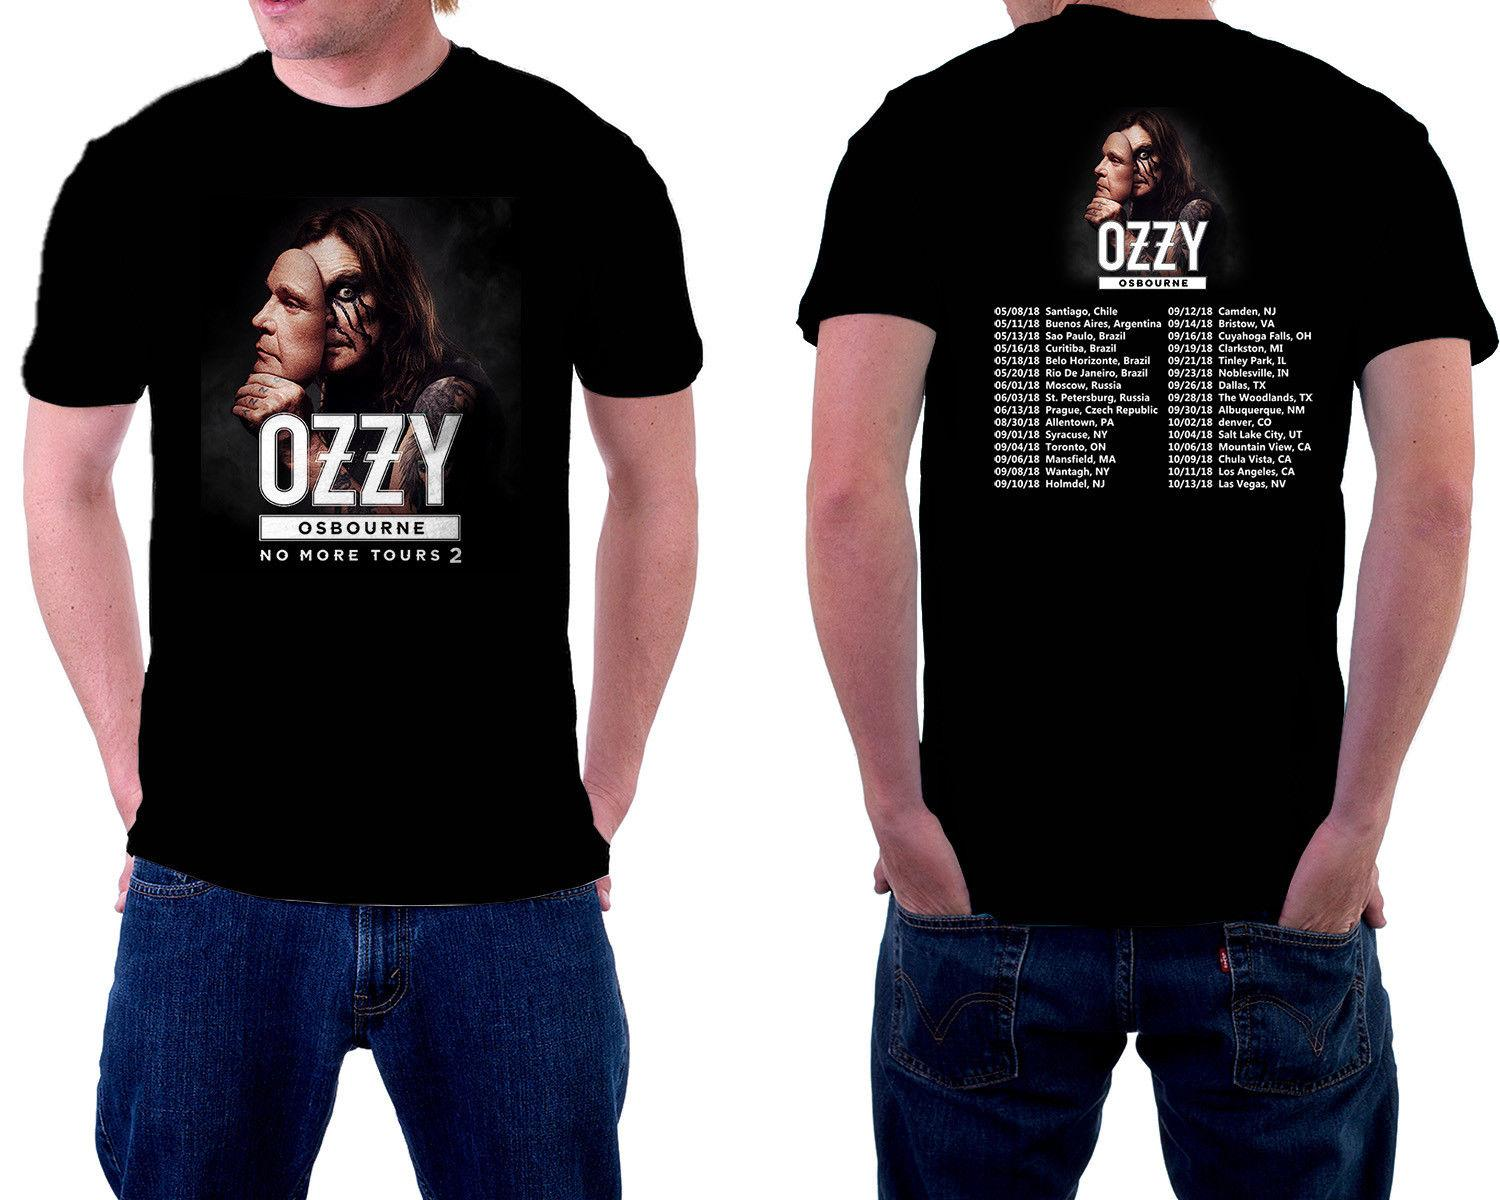 3d4d9dc2 Ozzy Osbourne Tour 2018 Tshirt With Tour Date Black Color New Design S 3XL  Best T Shirts Shirts Online From Beidhgate04, $11.17| DHgate.Com